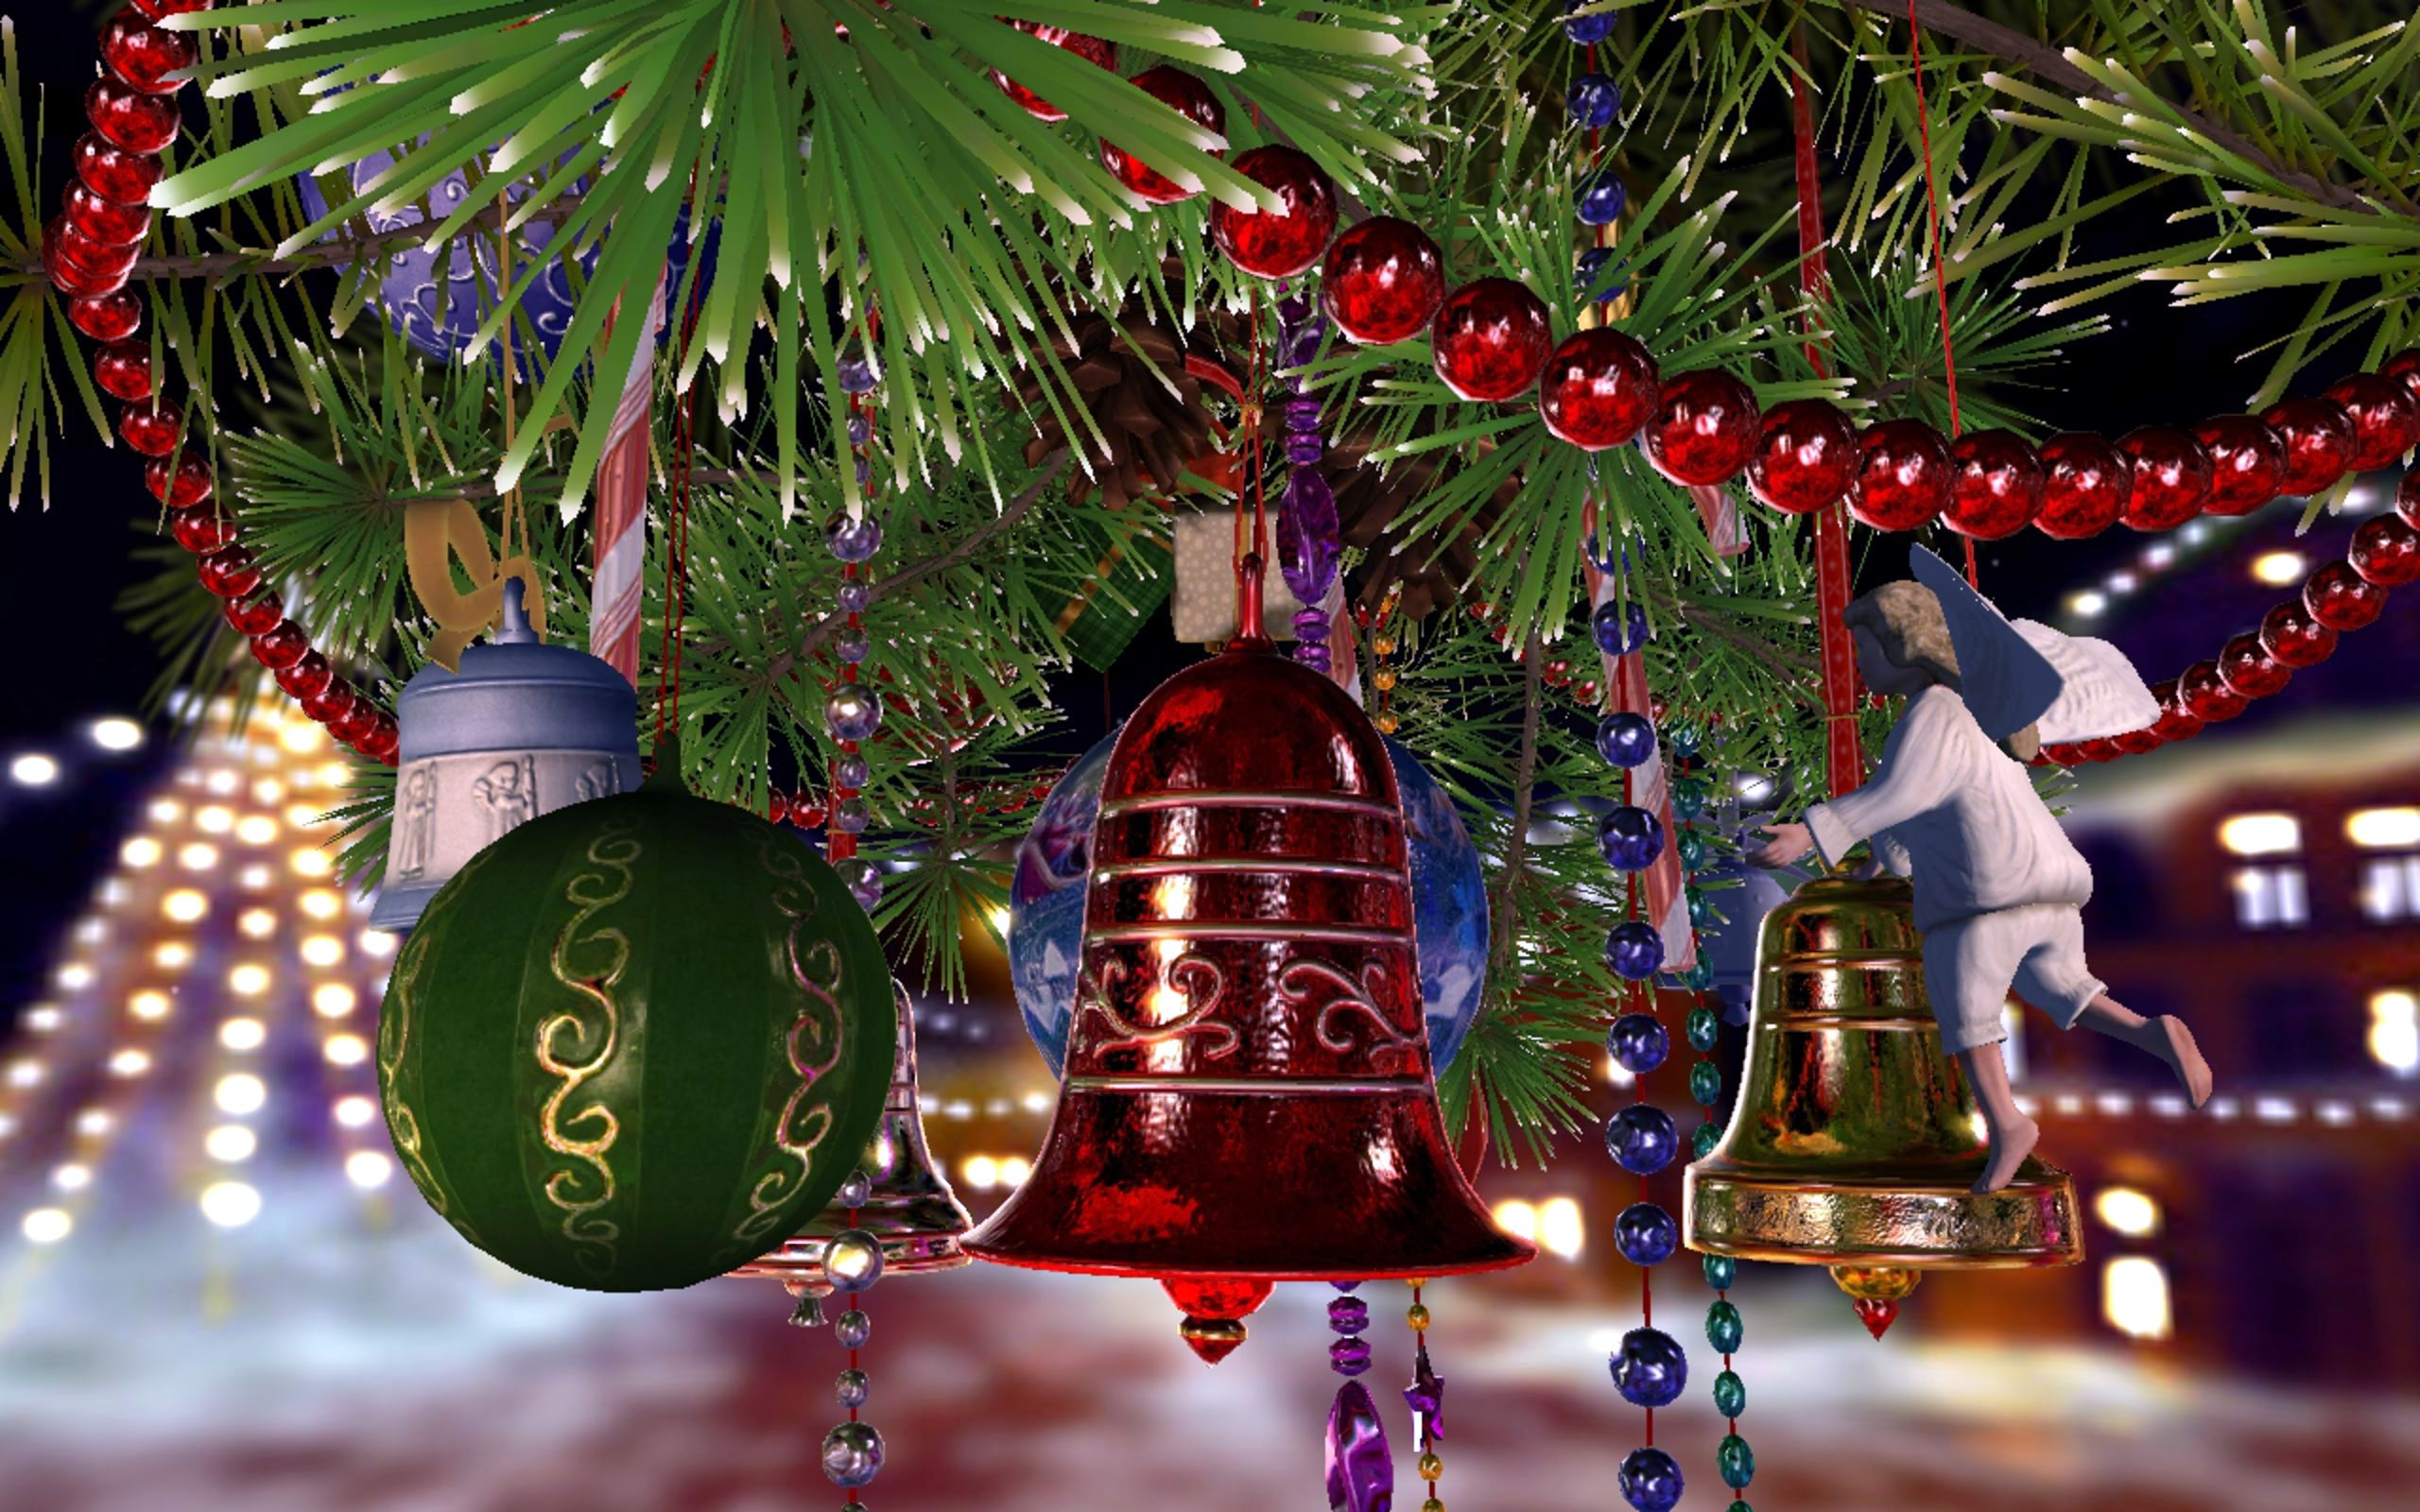 christmas bell background 39631 2560x1600 px hdwallsource com